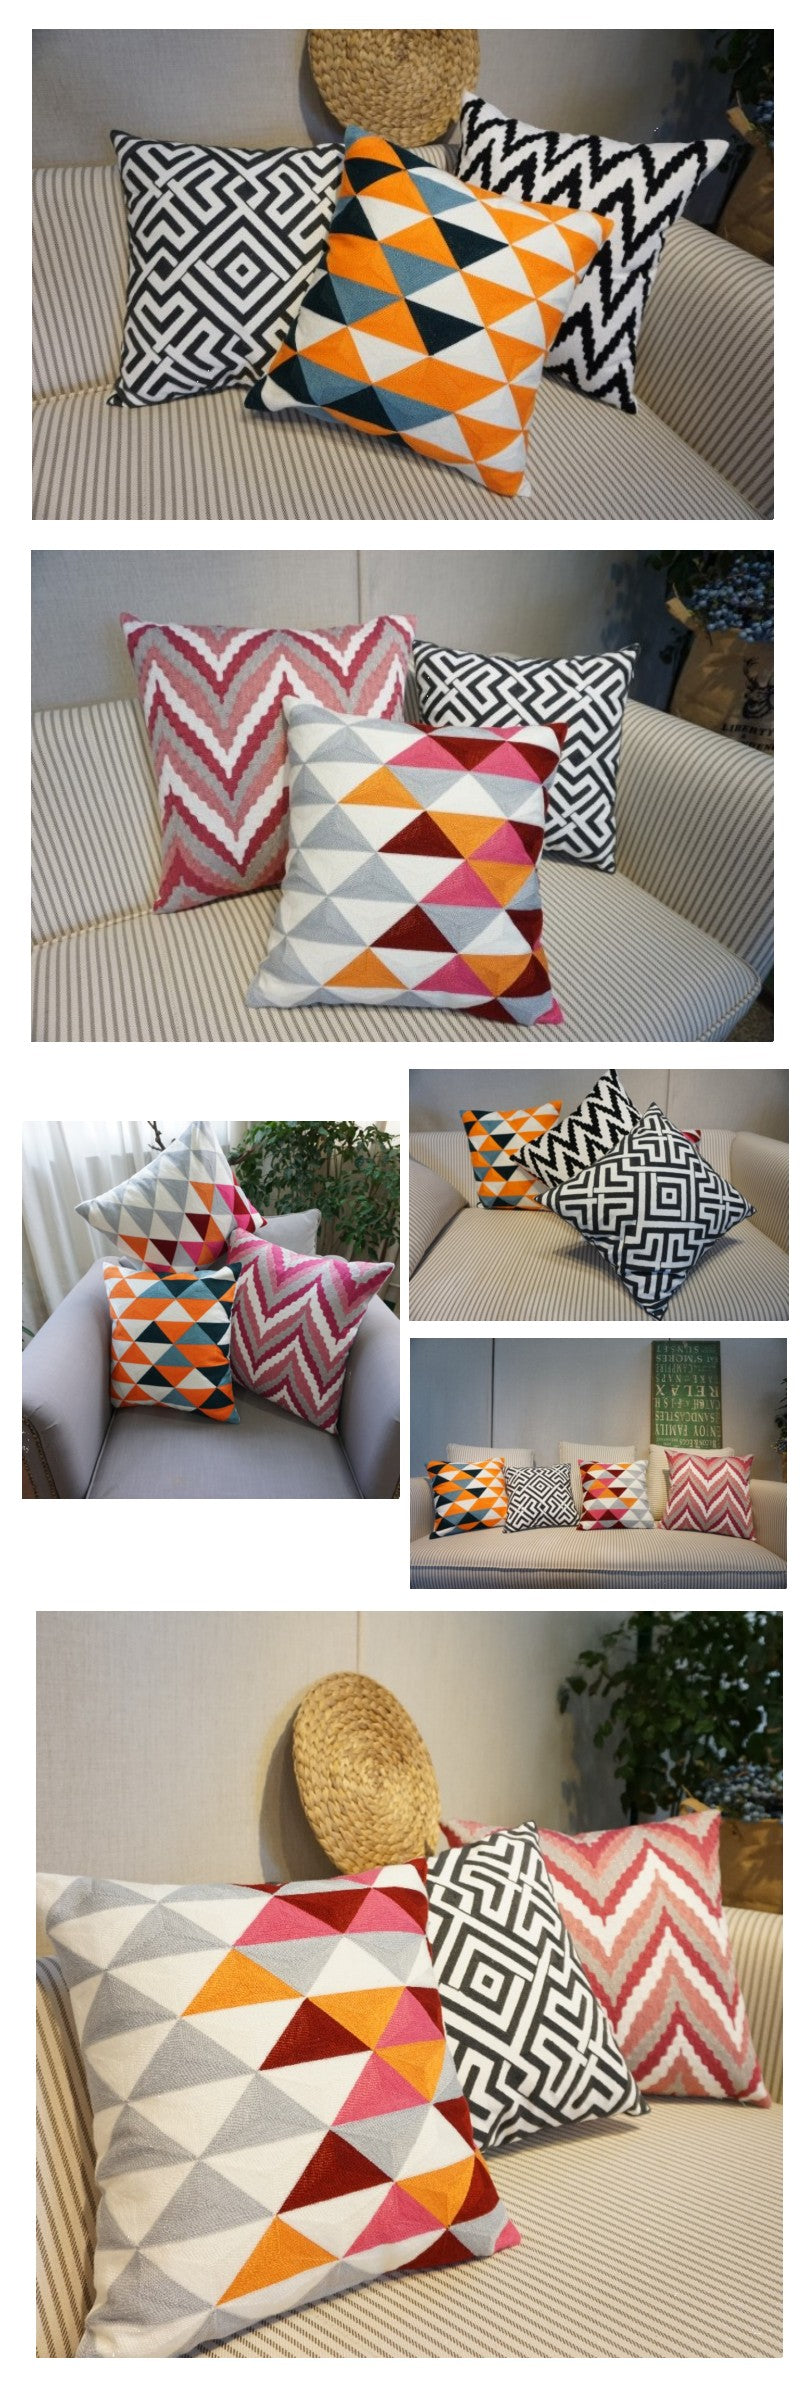 Decorative Throw Pillow, Cotton Pillow Cover, Sofa Pillows, Home Decoration